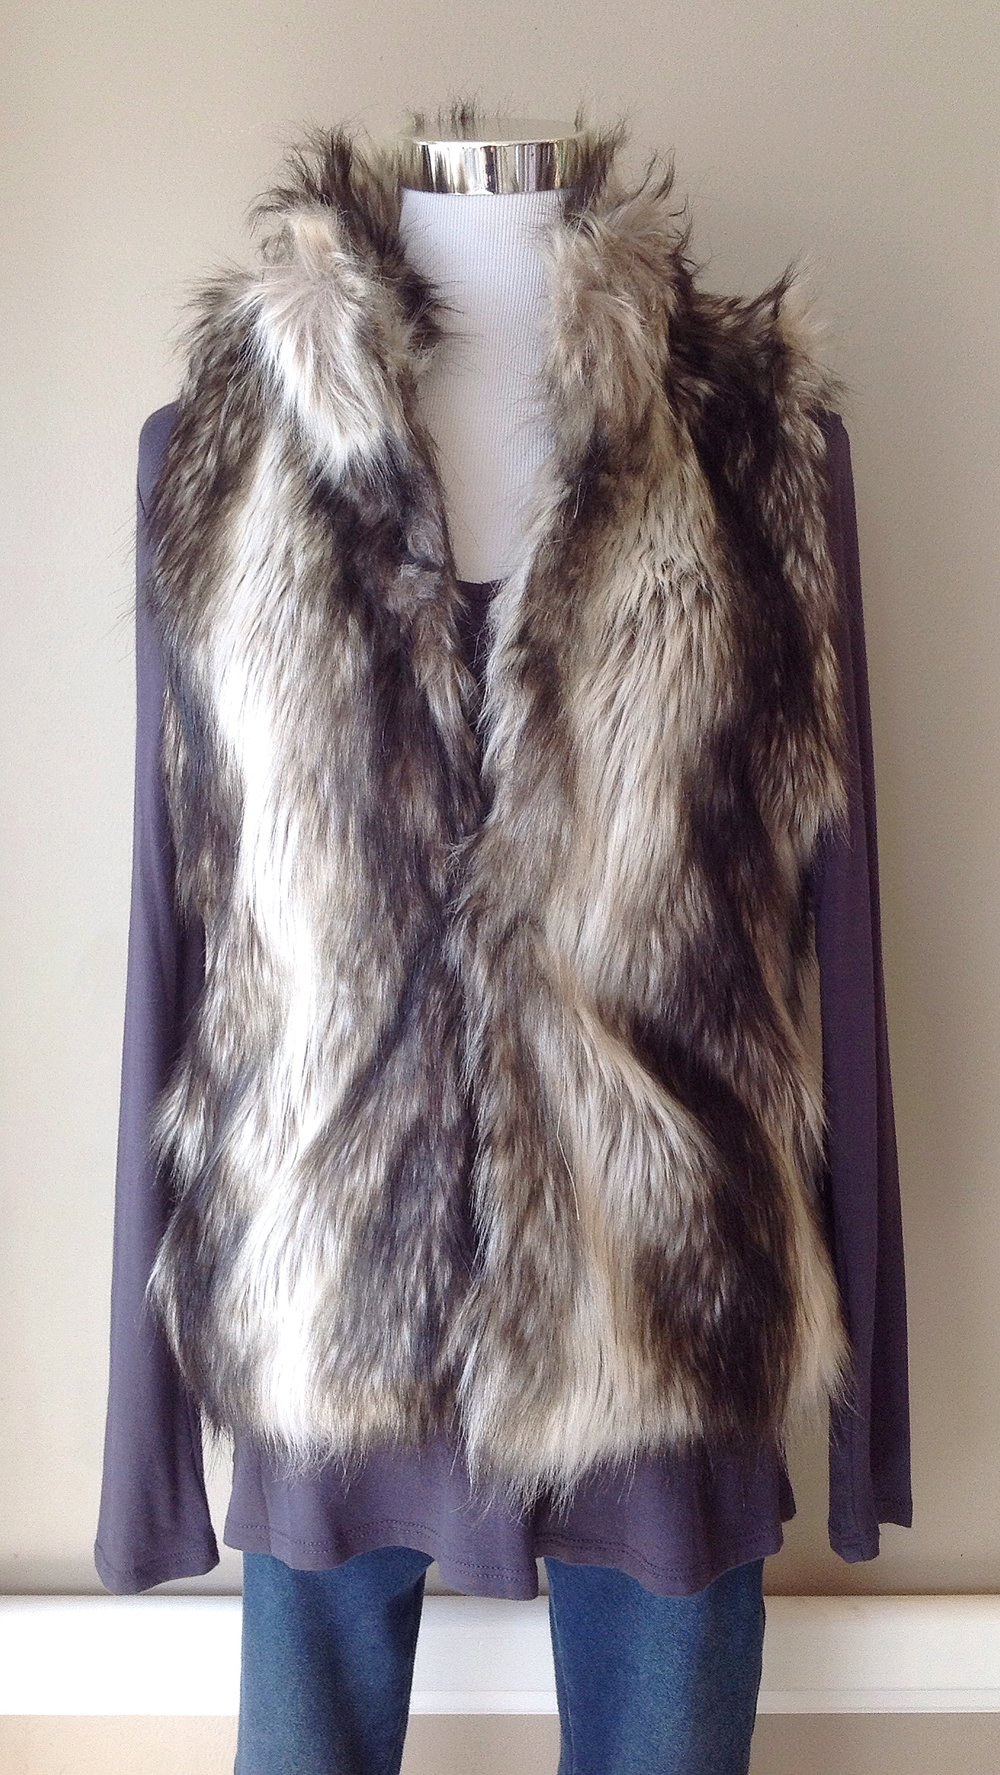 Faux fur vest with hidden hook and eye closures, $52